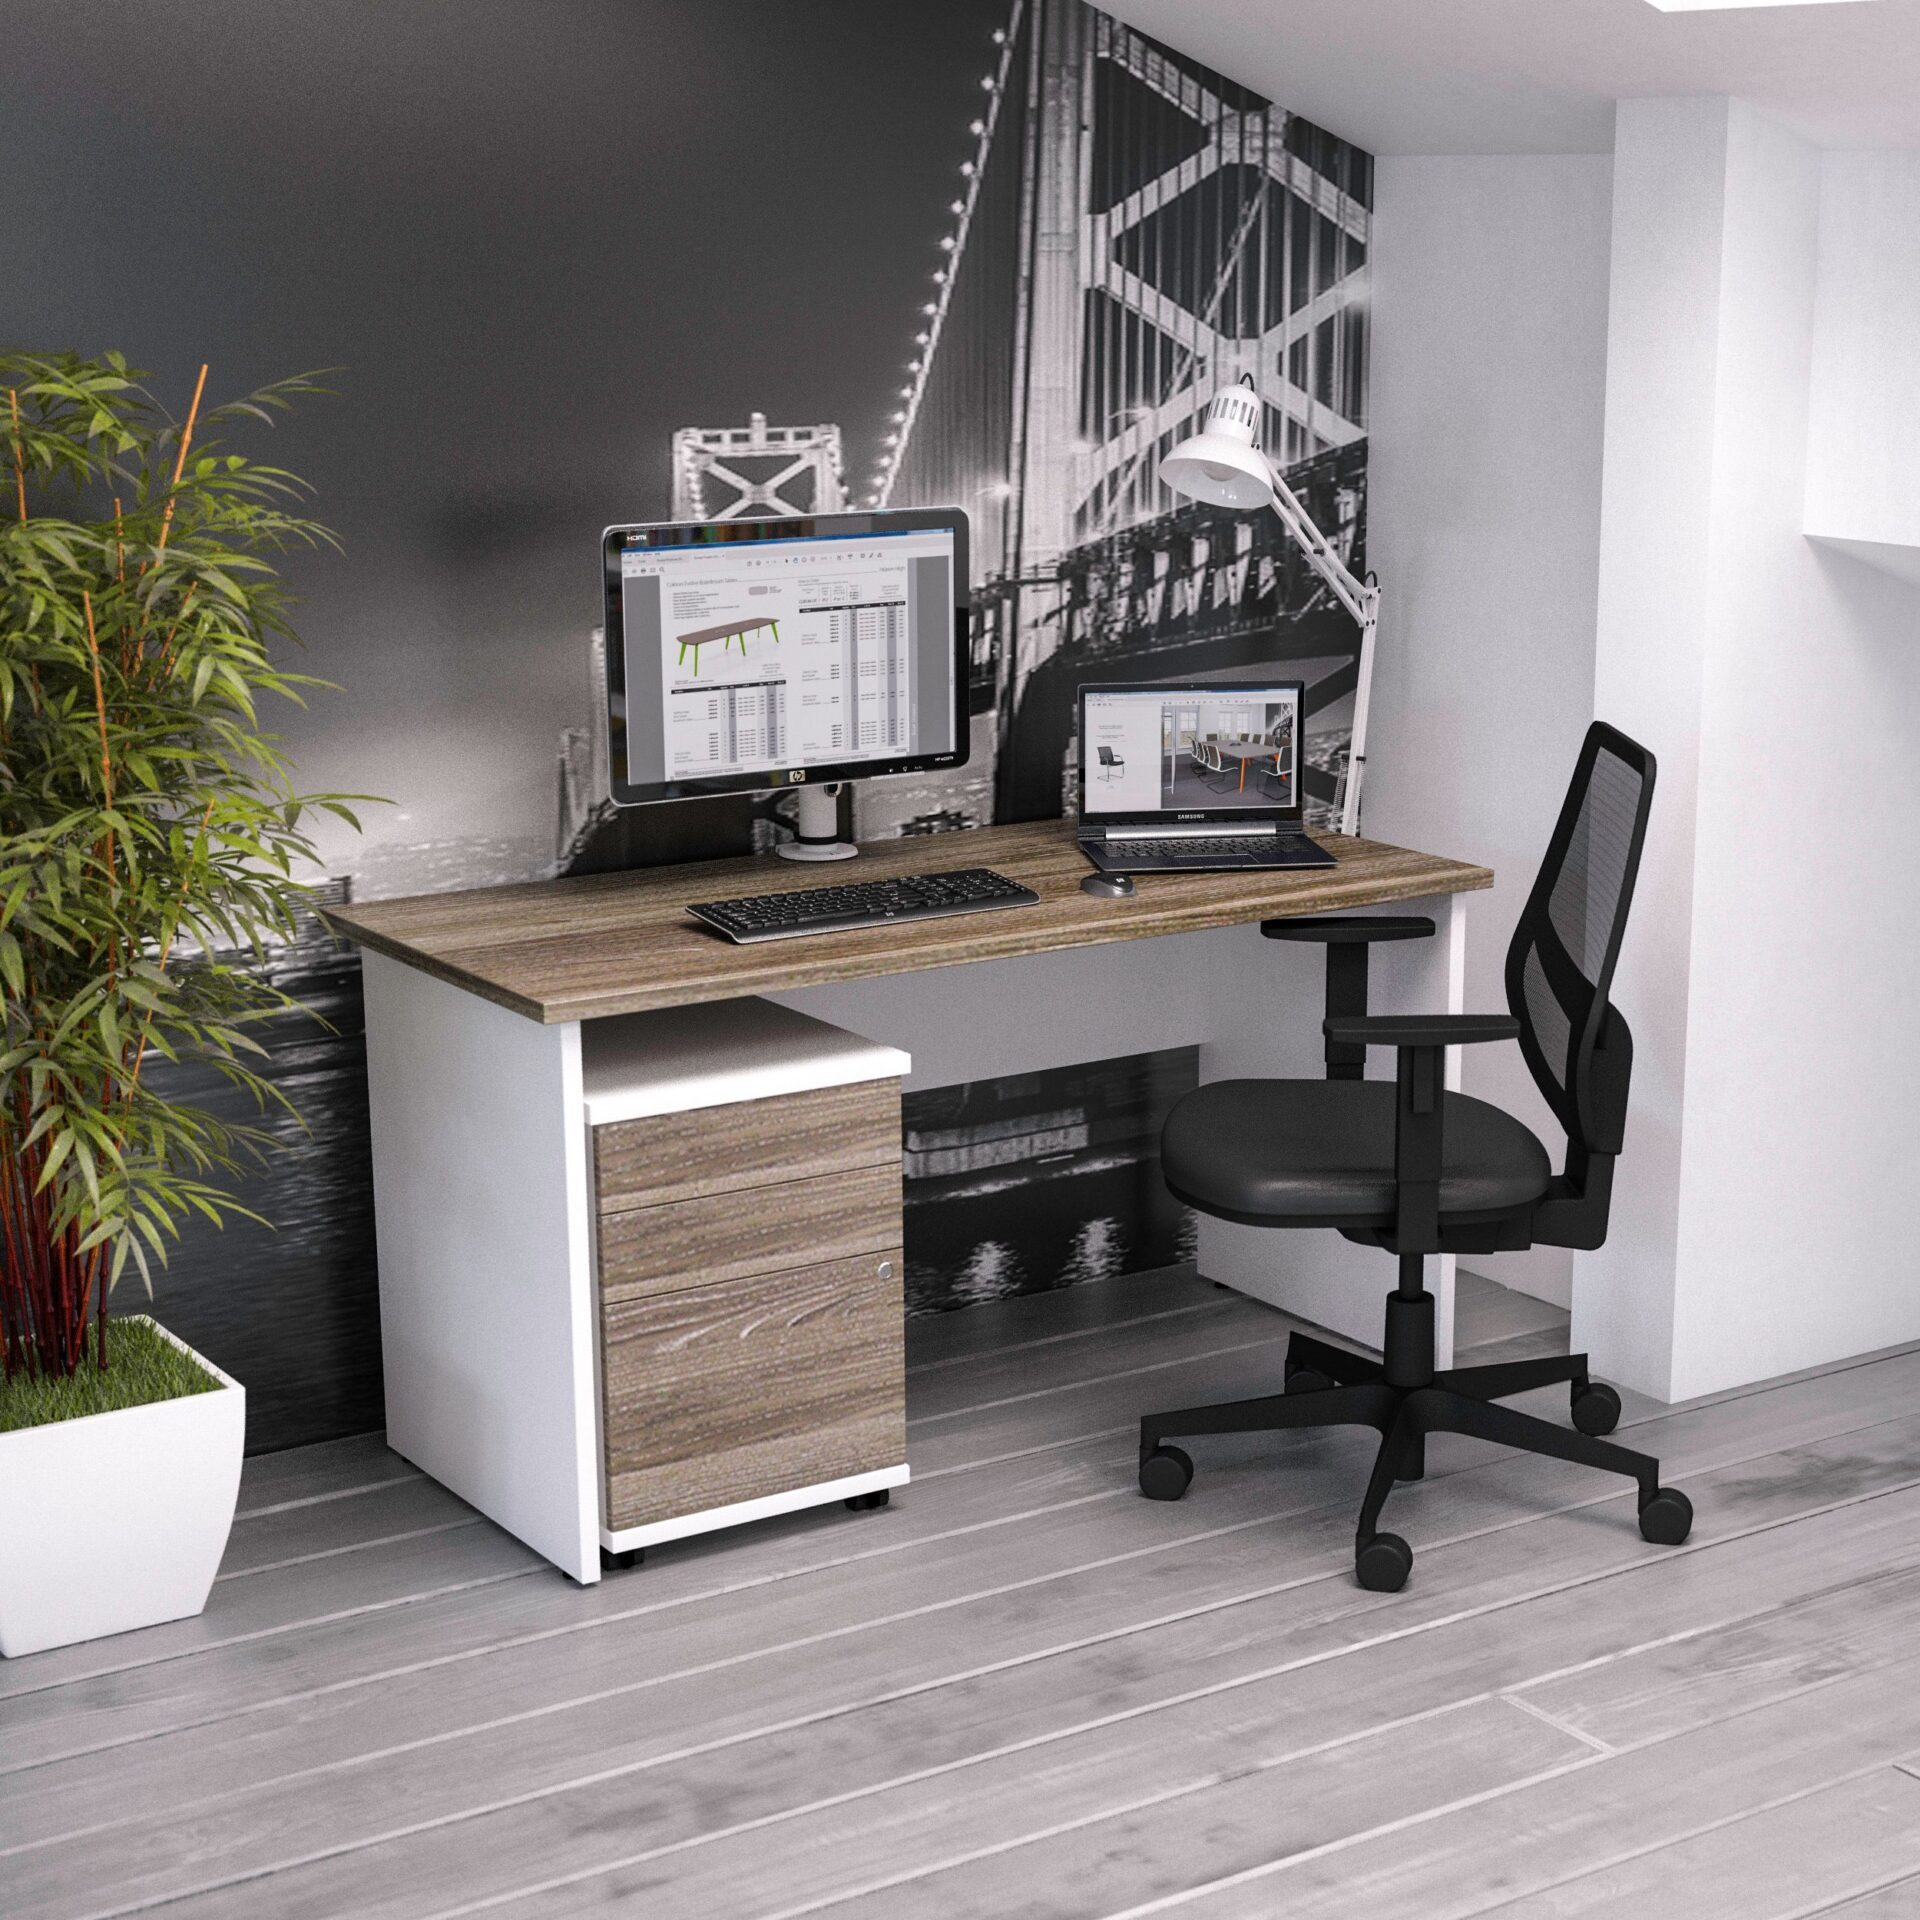 Ecos Office Furniture Top Quality Furniture At Bottom Drawer Prices